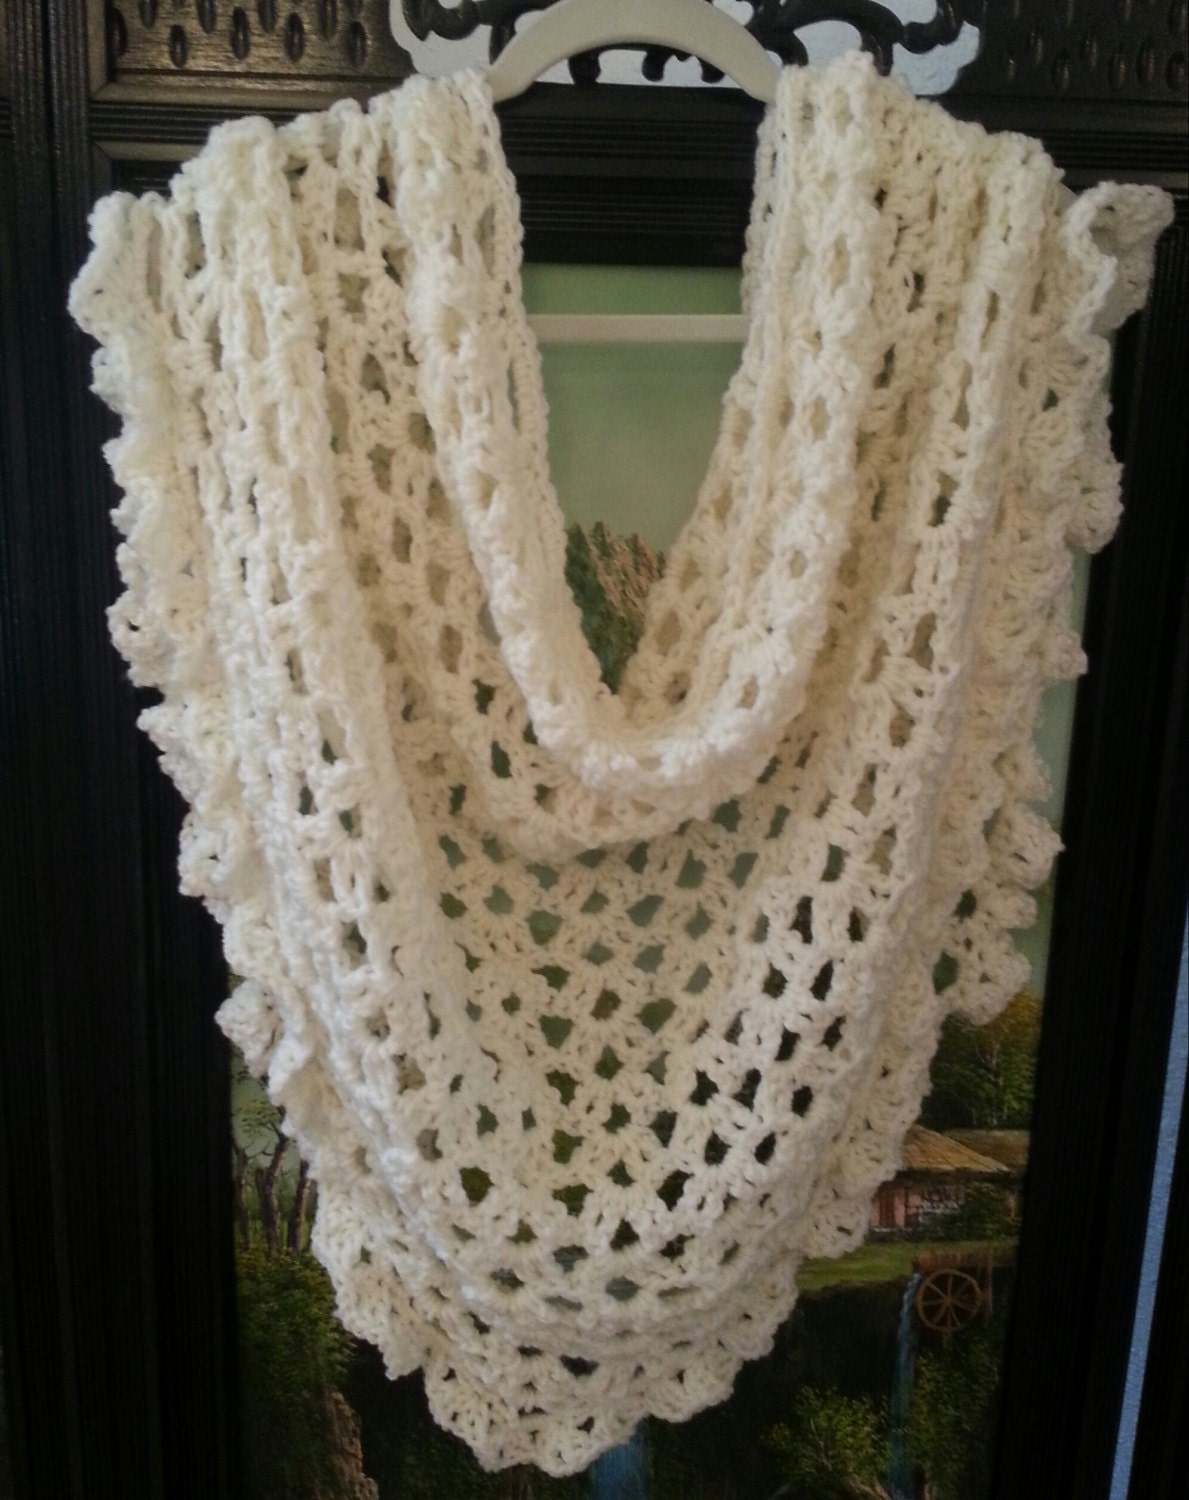 Crochet Triangle Shawl Patterns For Beginners : Items similar to Crochet Pattern Lace Shawl Bridal Shawl ...